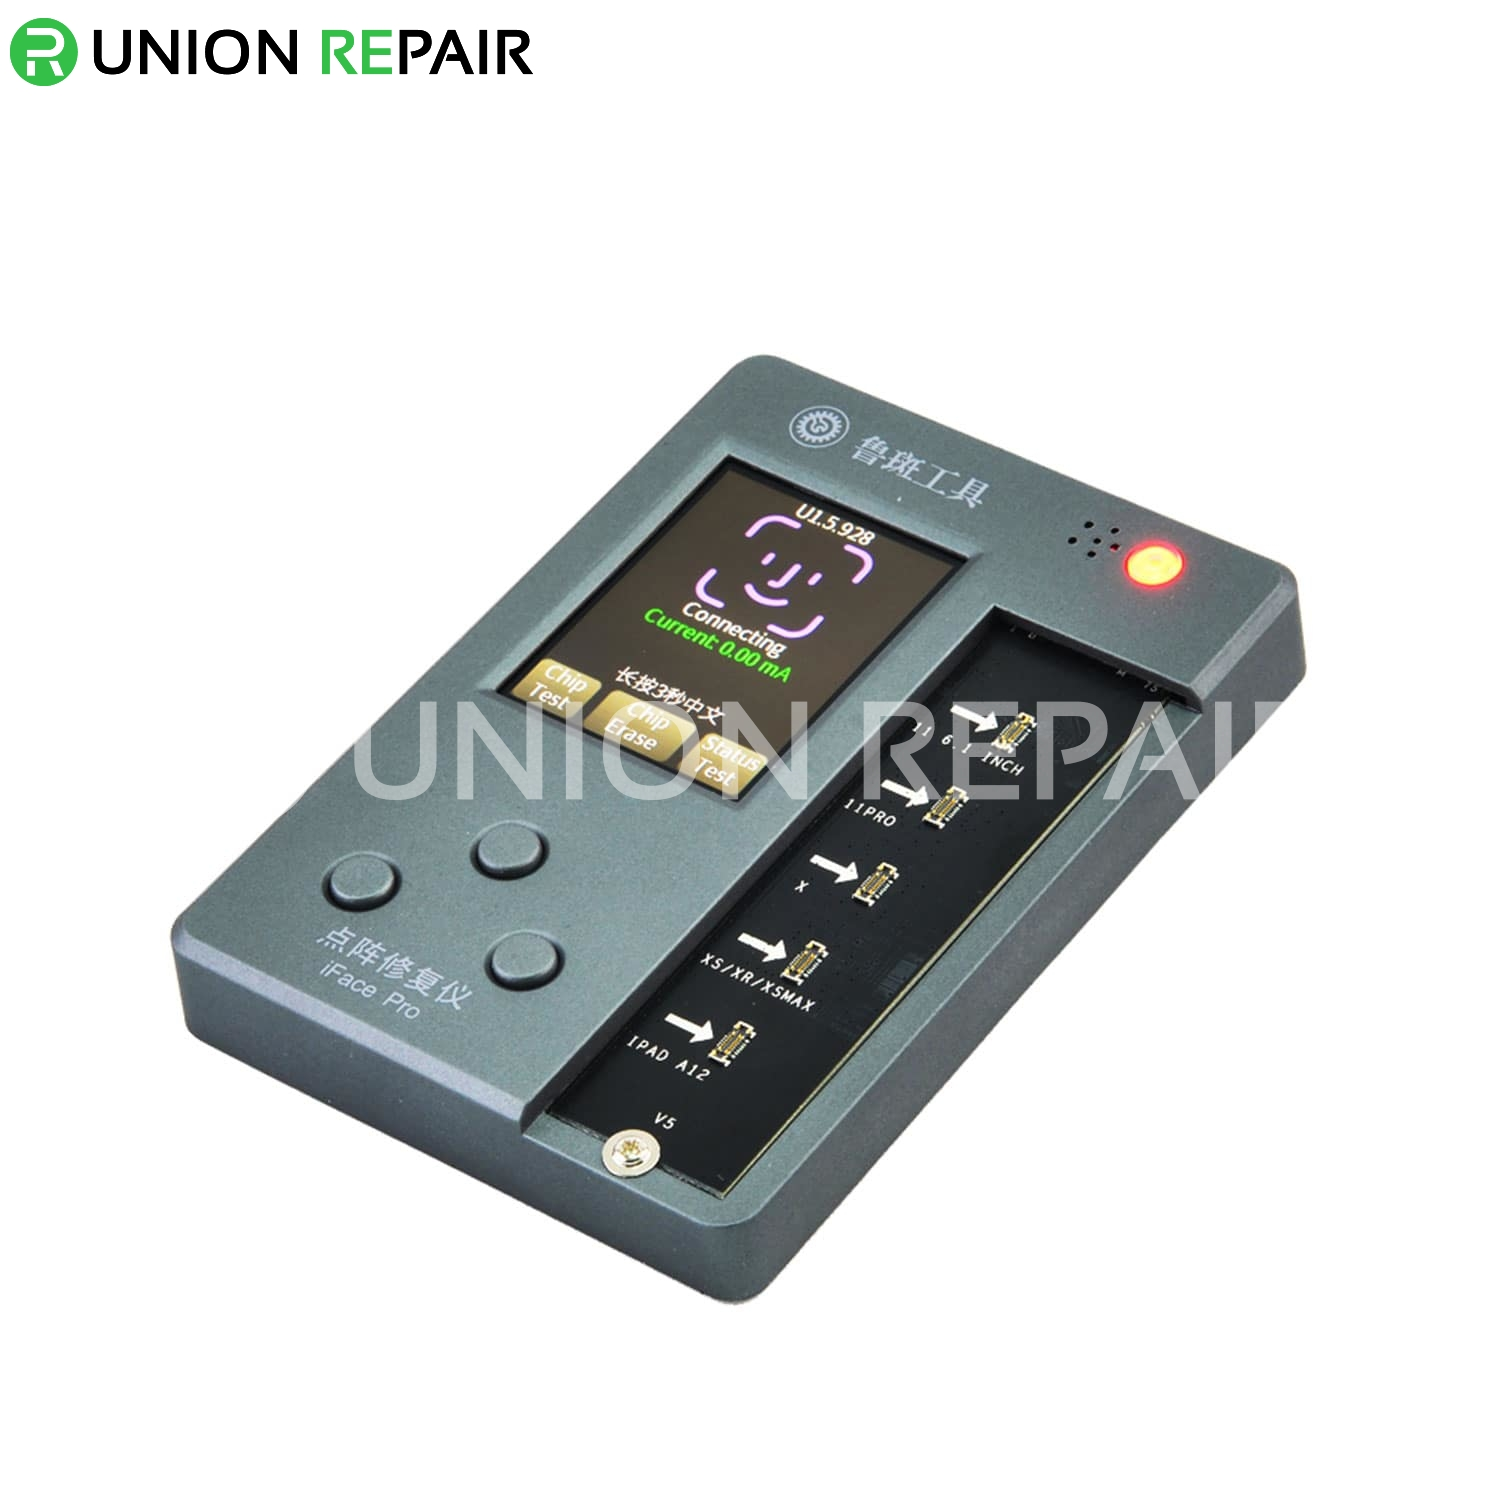 LuBan iFace Pro Matrix Tester Dot Projector for iPhone X/XS/XSMAX/XR/11/11PRO/11PROMAX